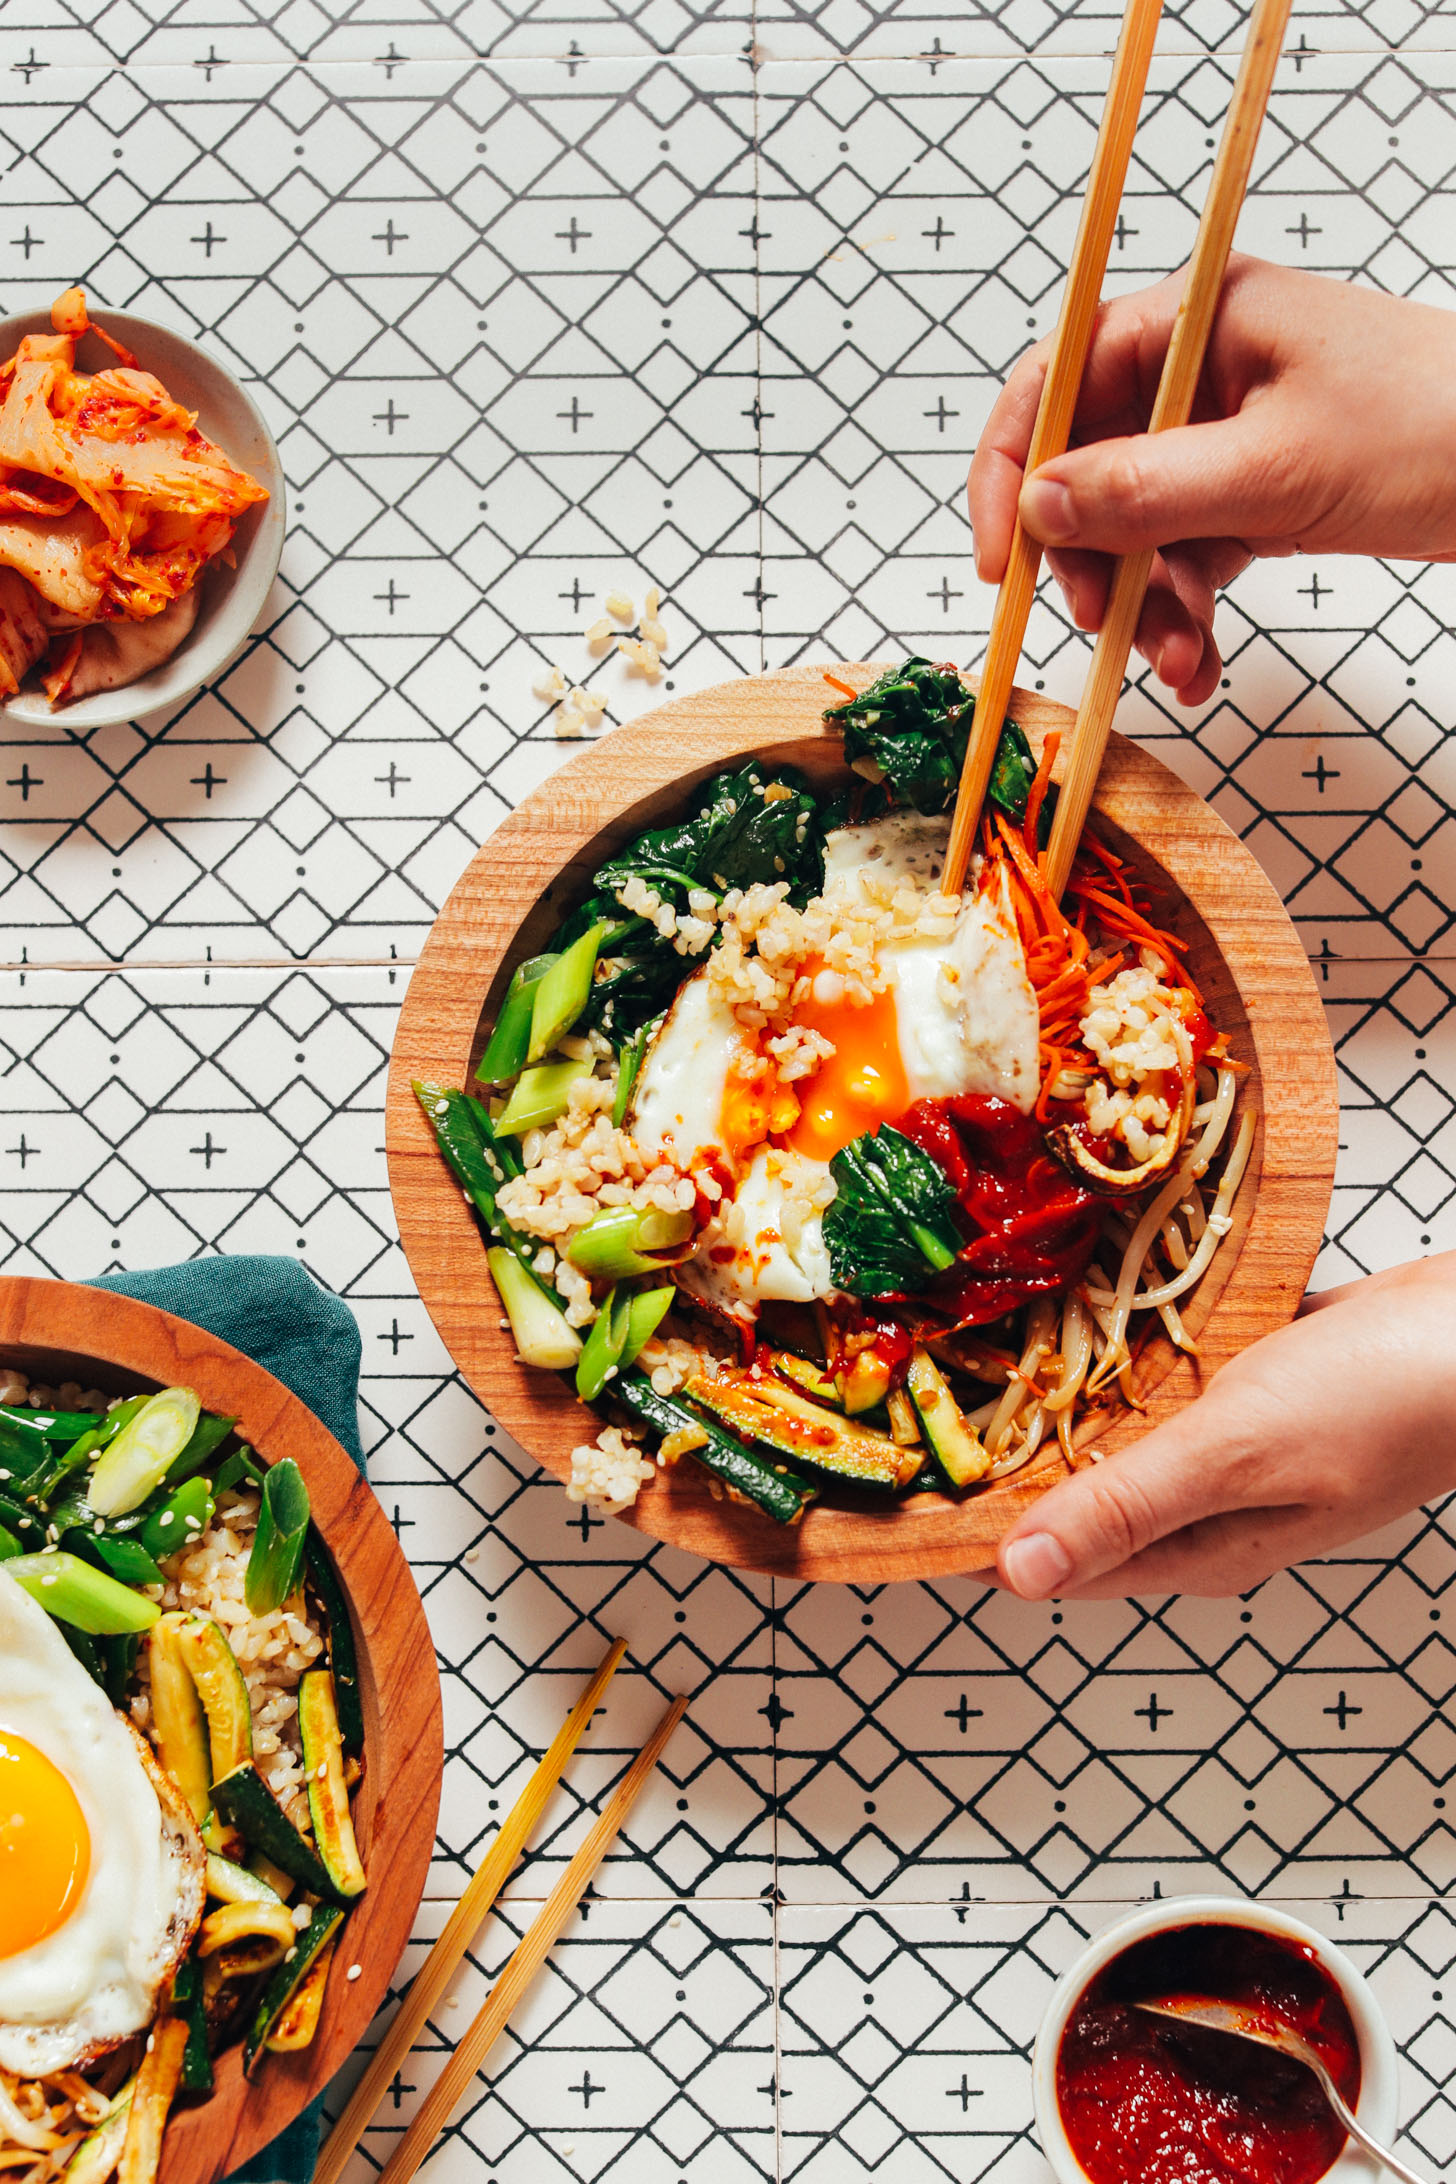 Using chopsticks to pick up a bite from a bowl of homemade Korean Bibimbap